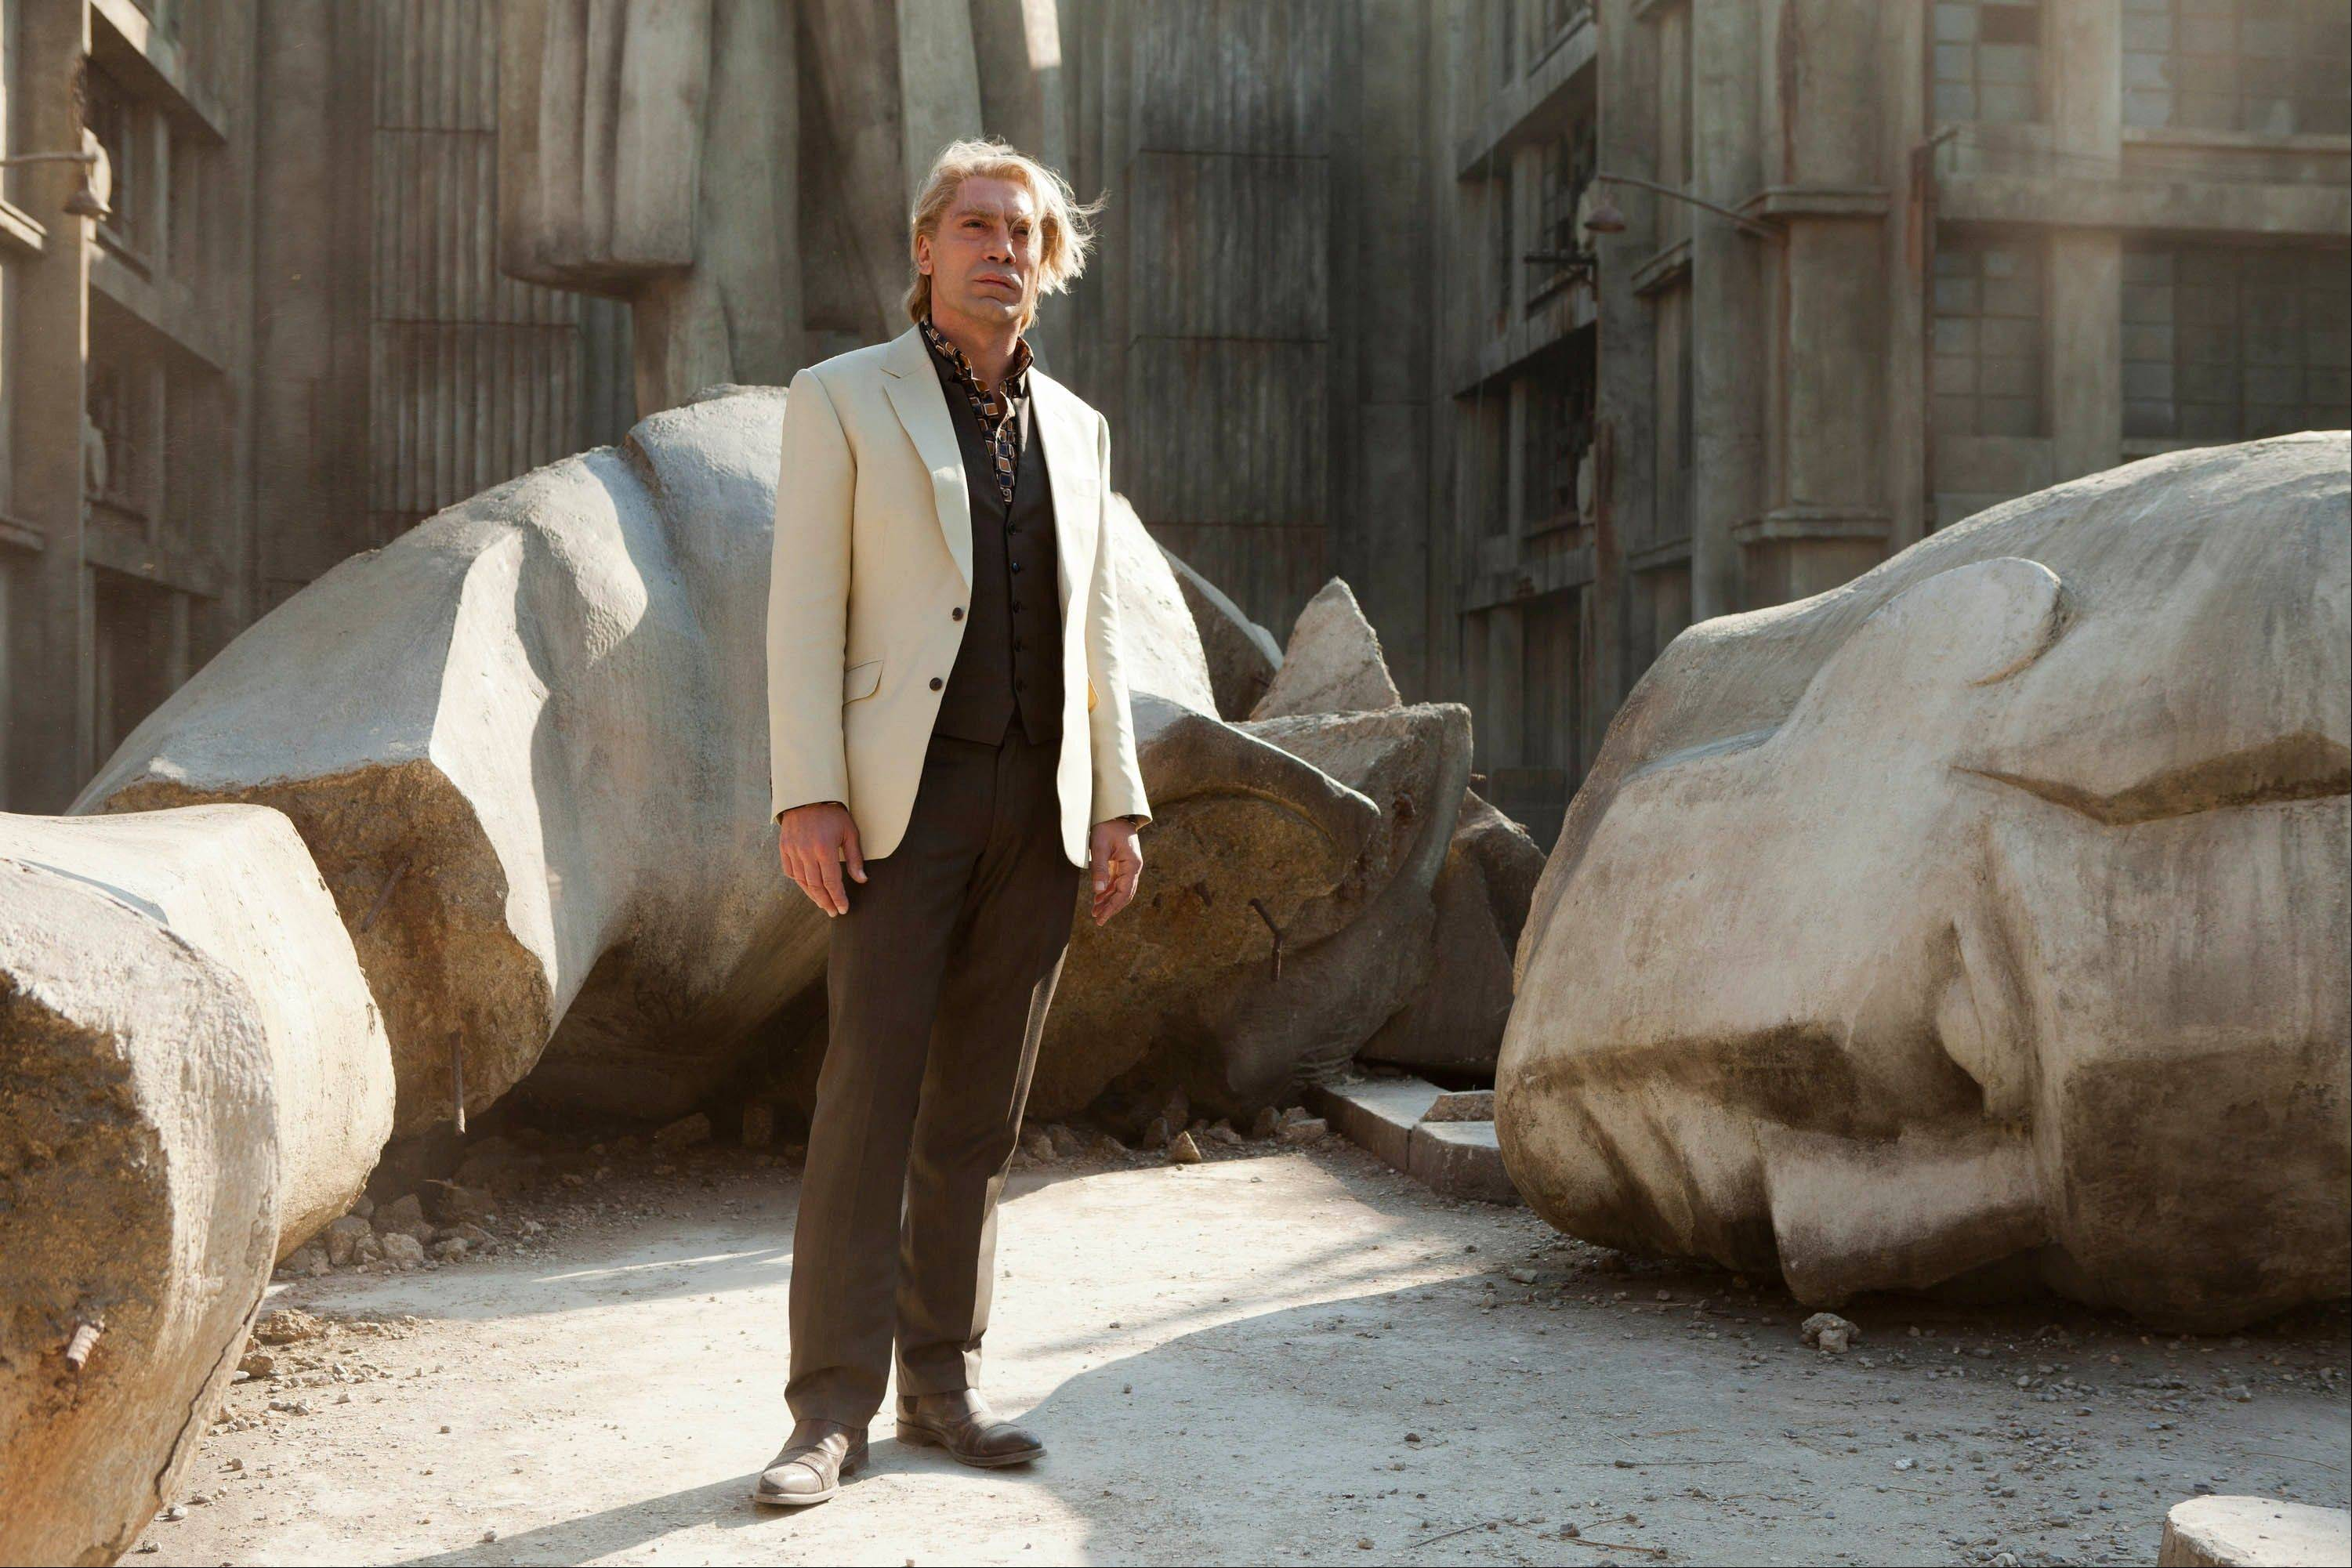 "This film image released by Sony Pictures shows Javier Bardem in a scene from the film ""Skyfall."" Bardem portrays, Raoul Silva, one of the finest arch-enemies in the 50-year history of Bond films."